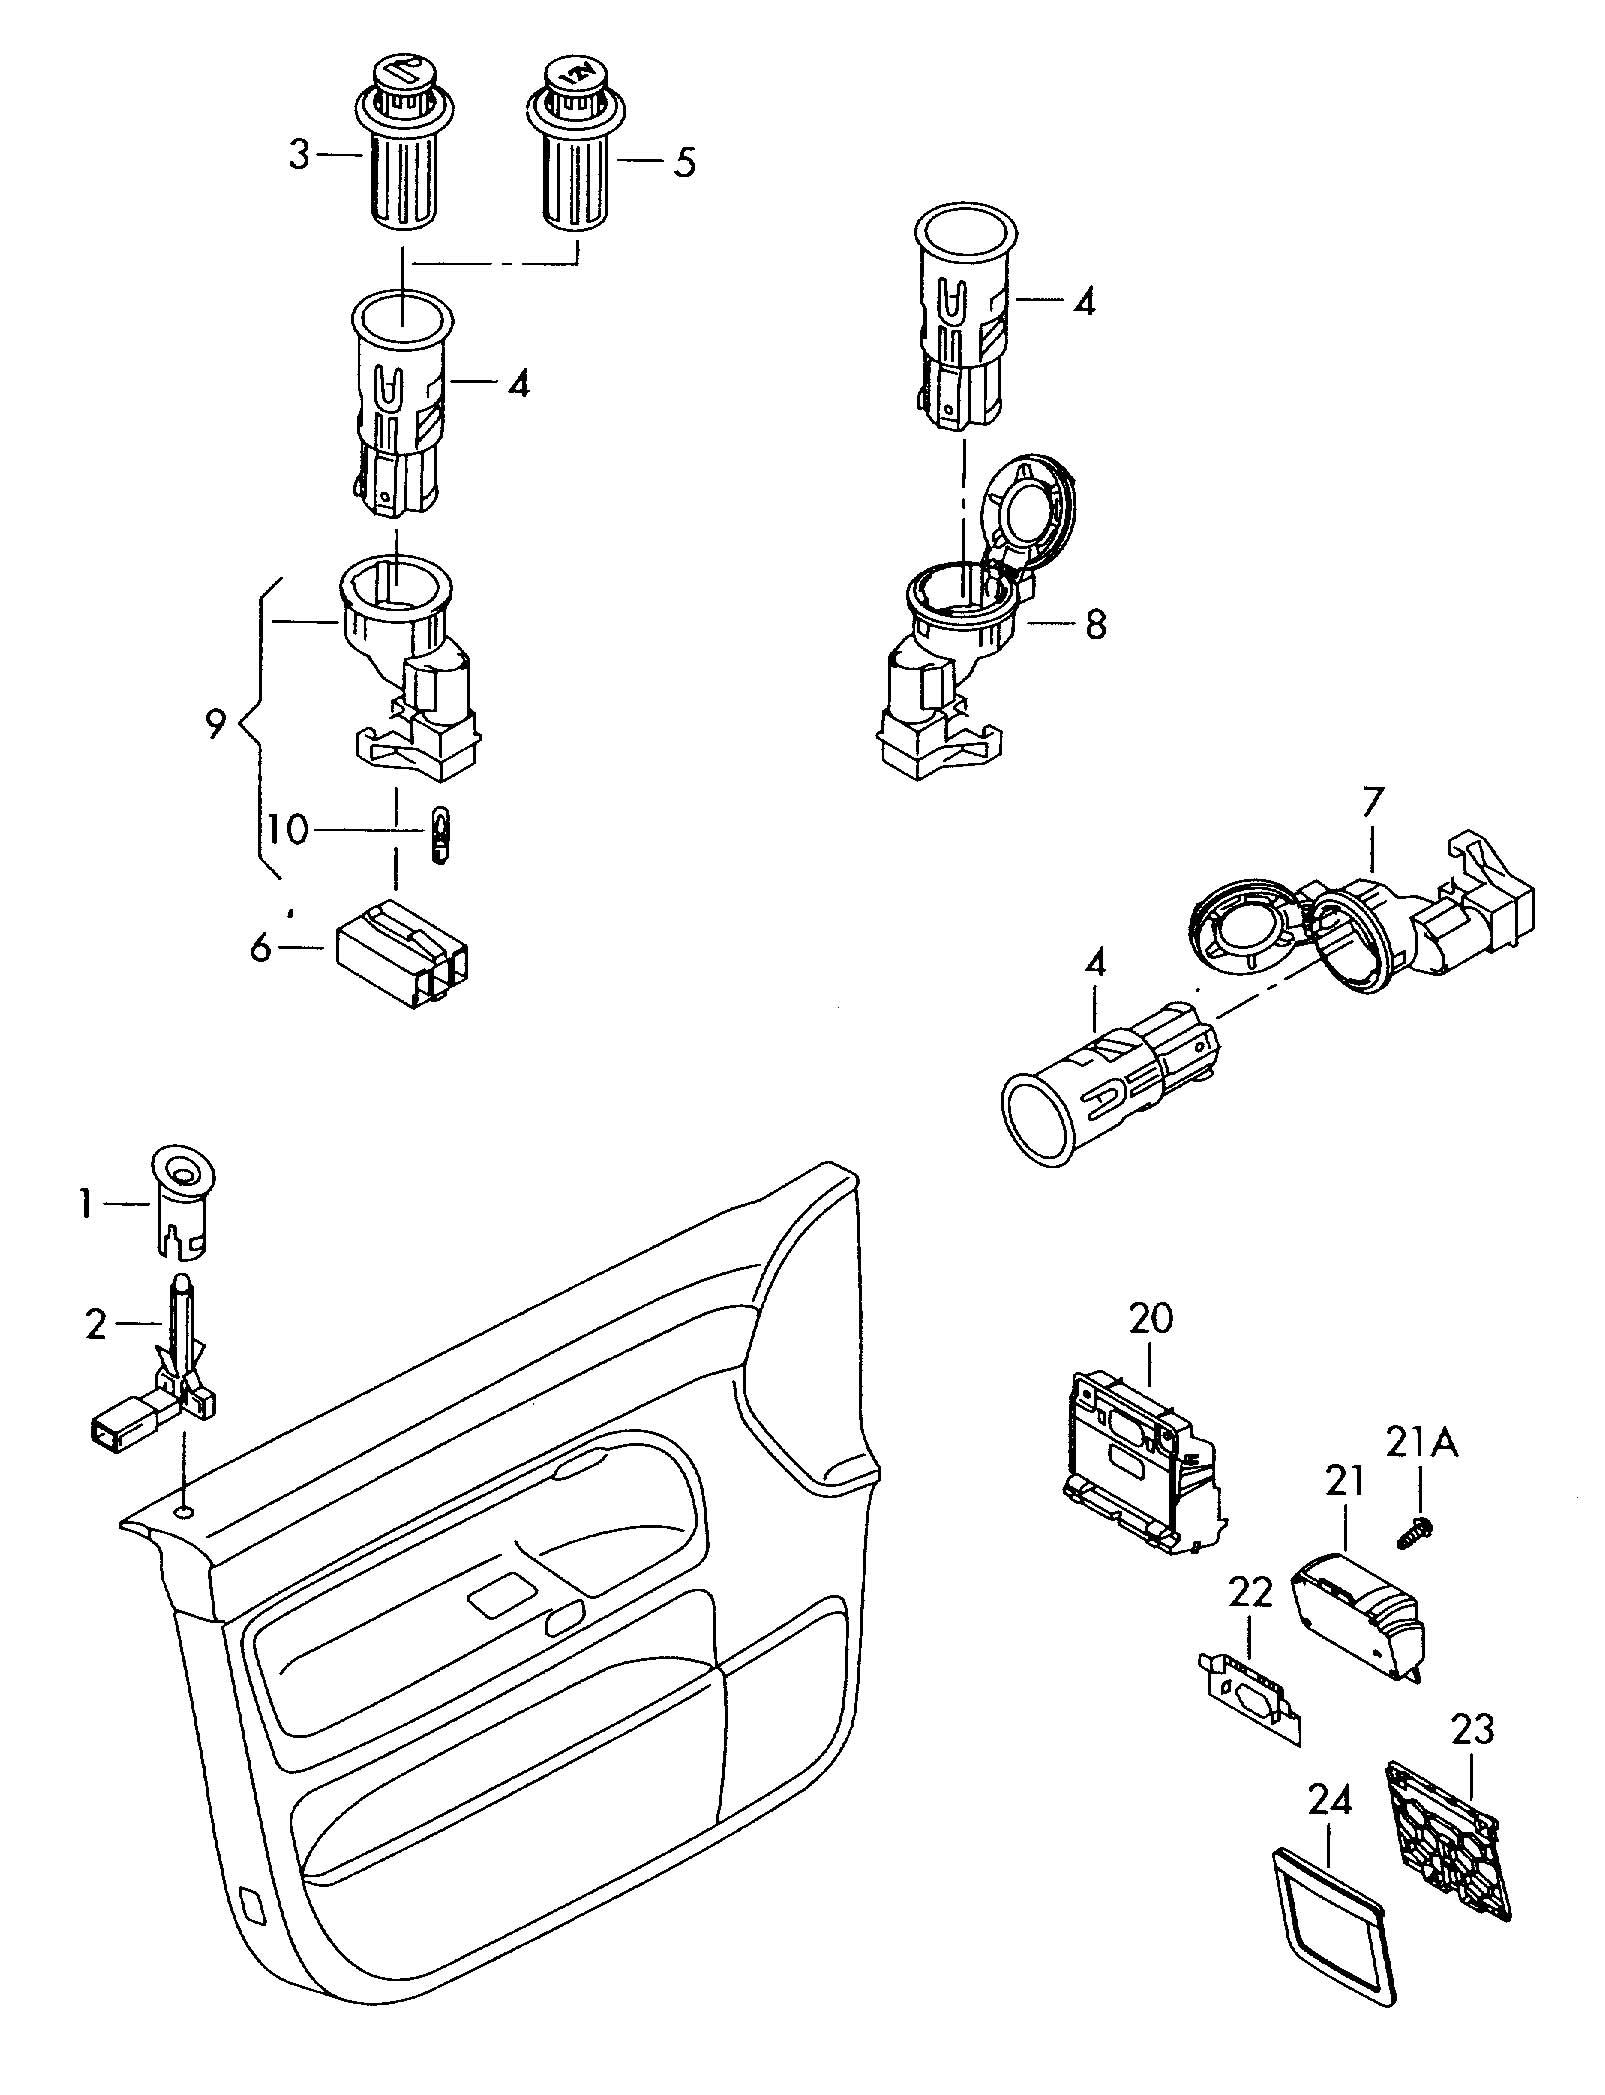 Car Bicycle Rack furthermore 164549 2002 Sel Duratech No Start Not Starter Not Ignition Switch further ShowAssembly as well Showassembly additionally 5GM863007CA9. on golf cart trunk